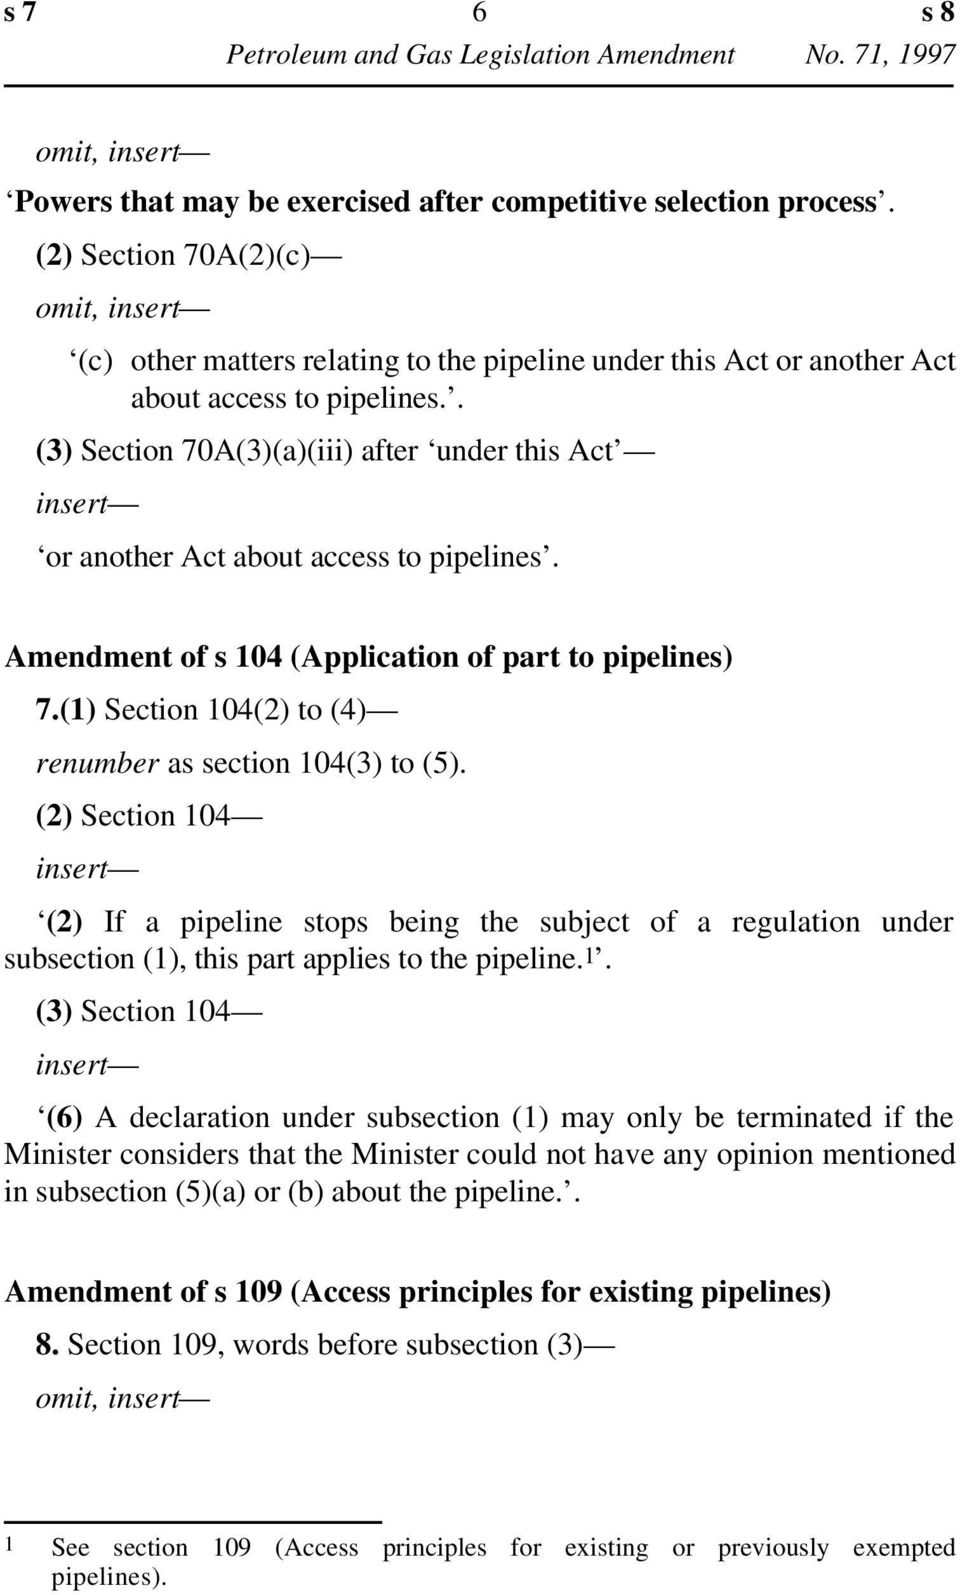 (1) Section 104(2) to (4) renumber as section 104(3) to (5). (2) Section 104 insert (2) If a pipeline stops being the subject of a regulation under subsection (1), this part applies to the